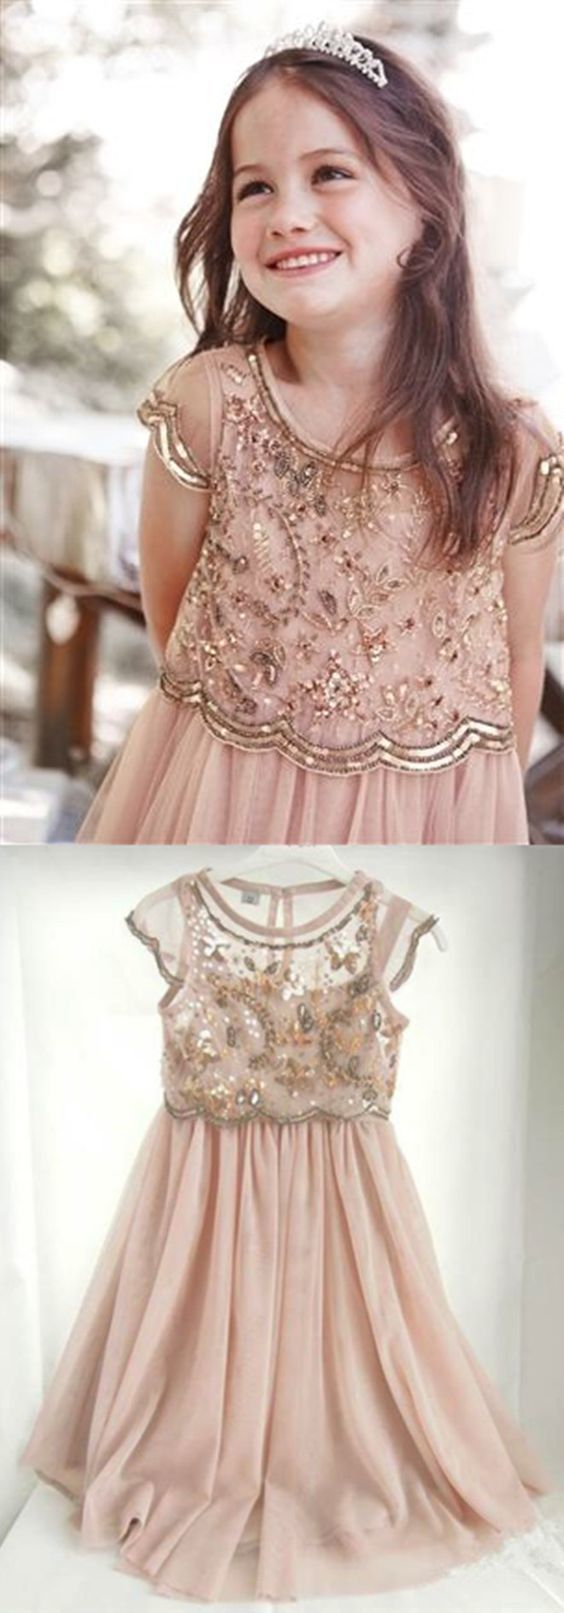 A-Line Crew Knee-Length Cap Sleeves Champagne Chiffon Flower Girl Dress with